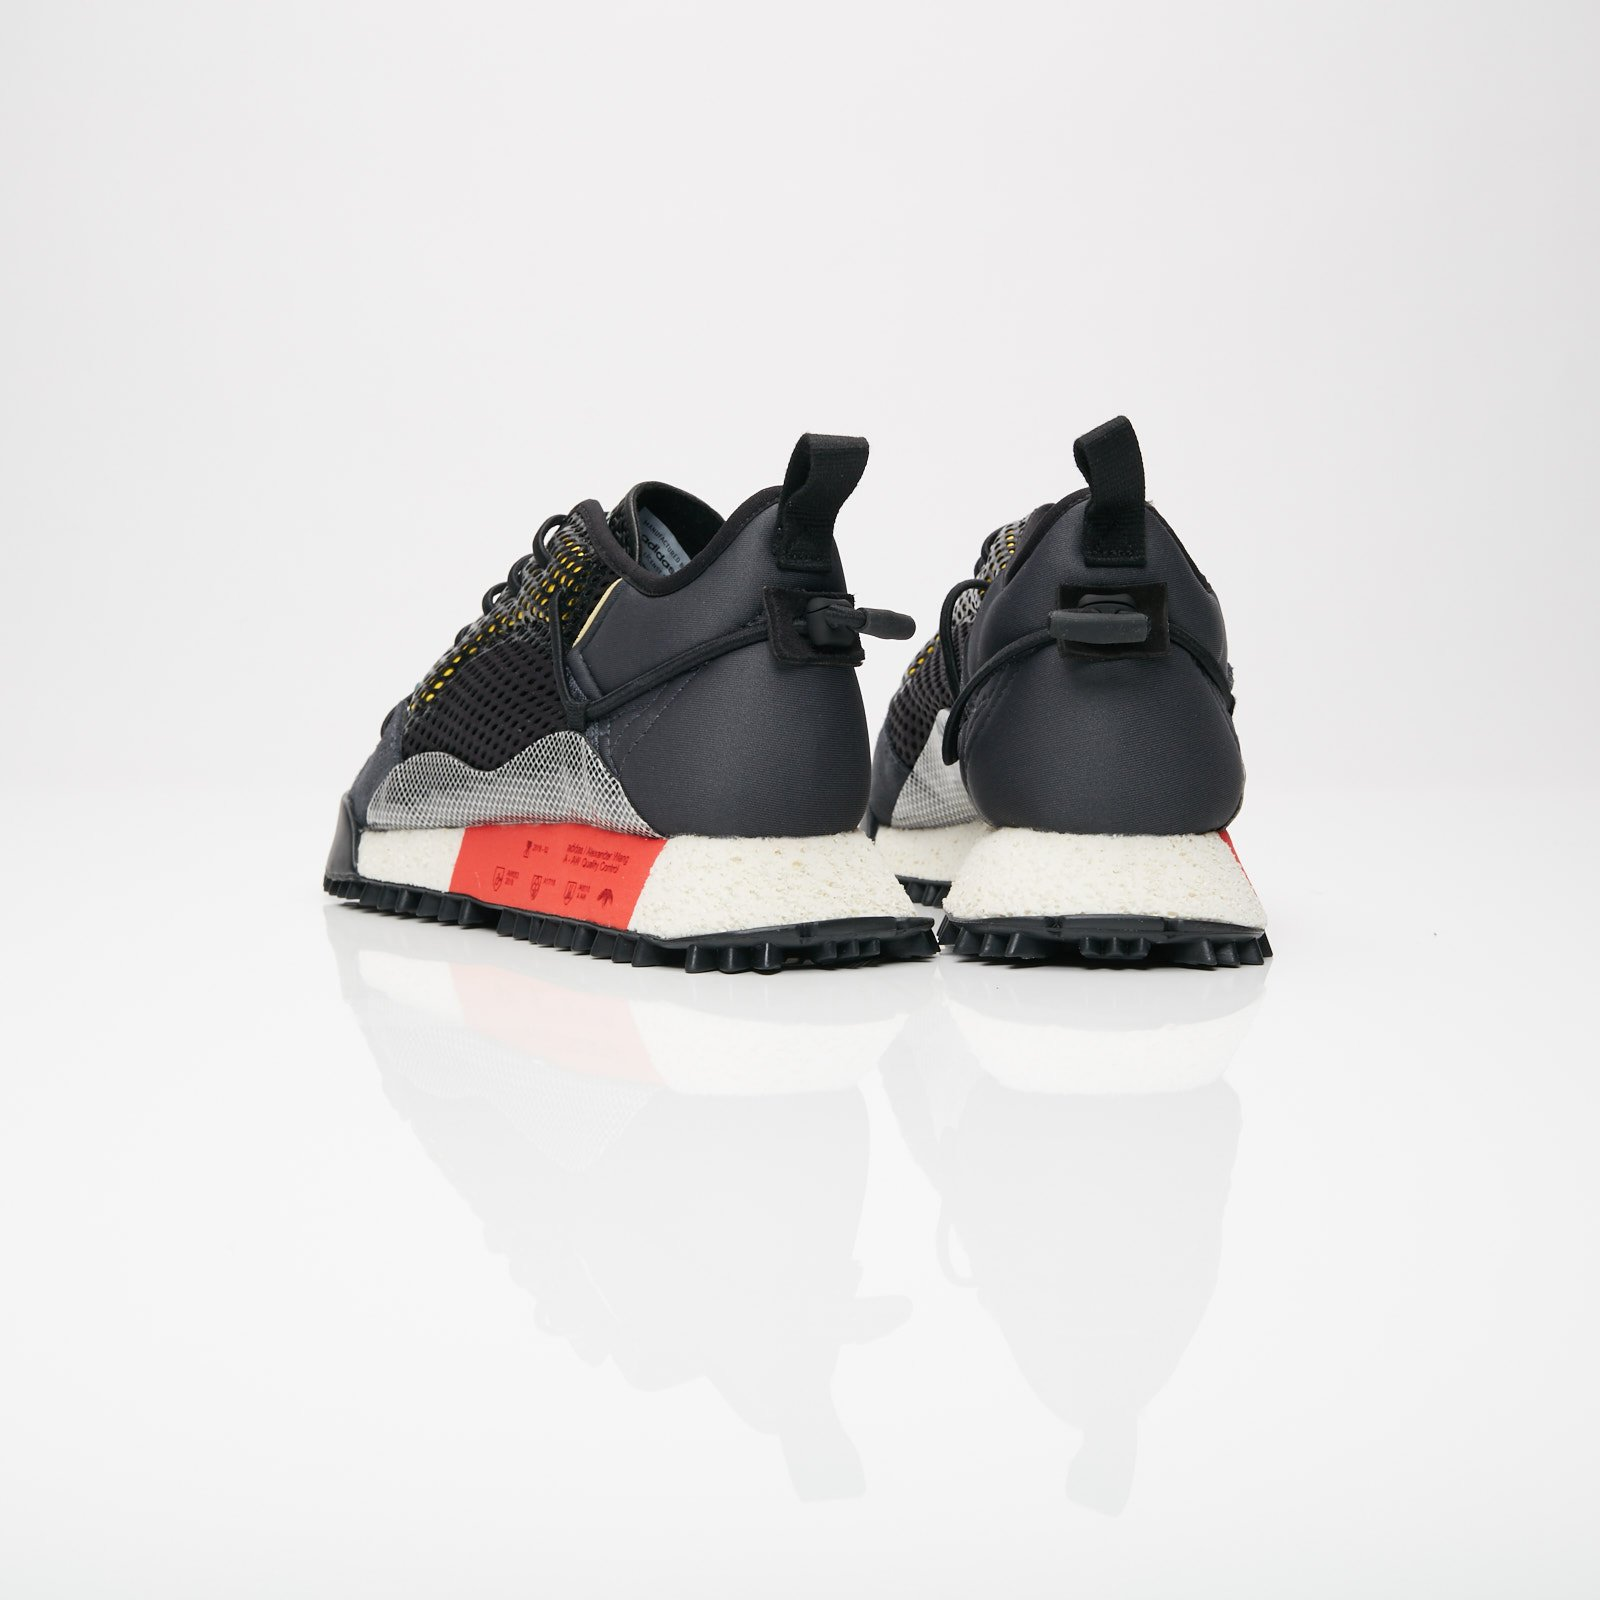 new arrival ad9dd 946d1 ... adidas Originals by Alexander Wang Reissue Run x Alexander Wang ...